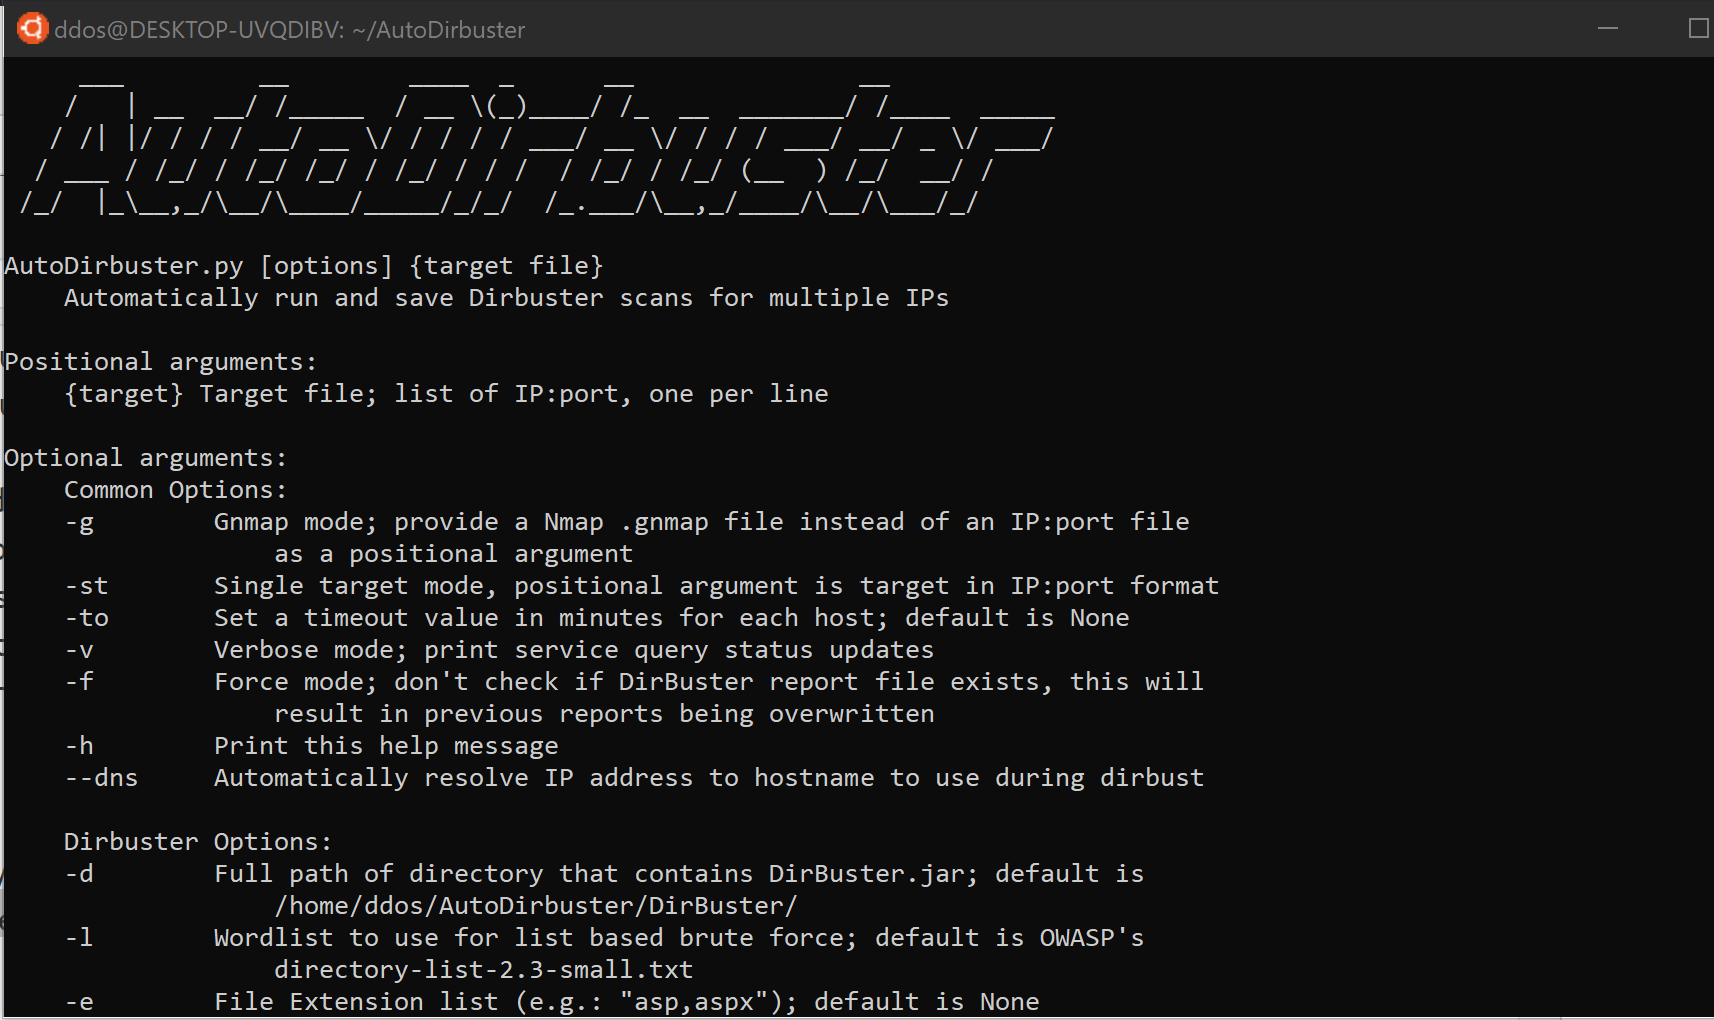 AutoDirbuster: Automatically run and save Dirbuster scans for multiple IPs